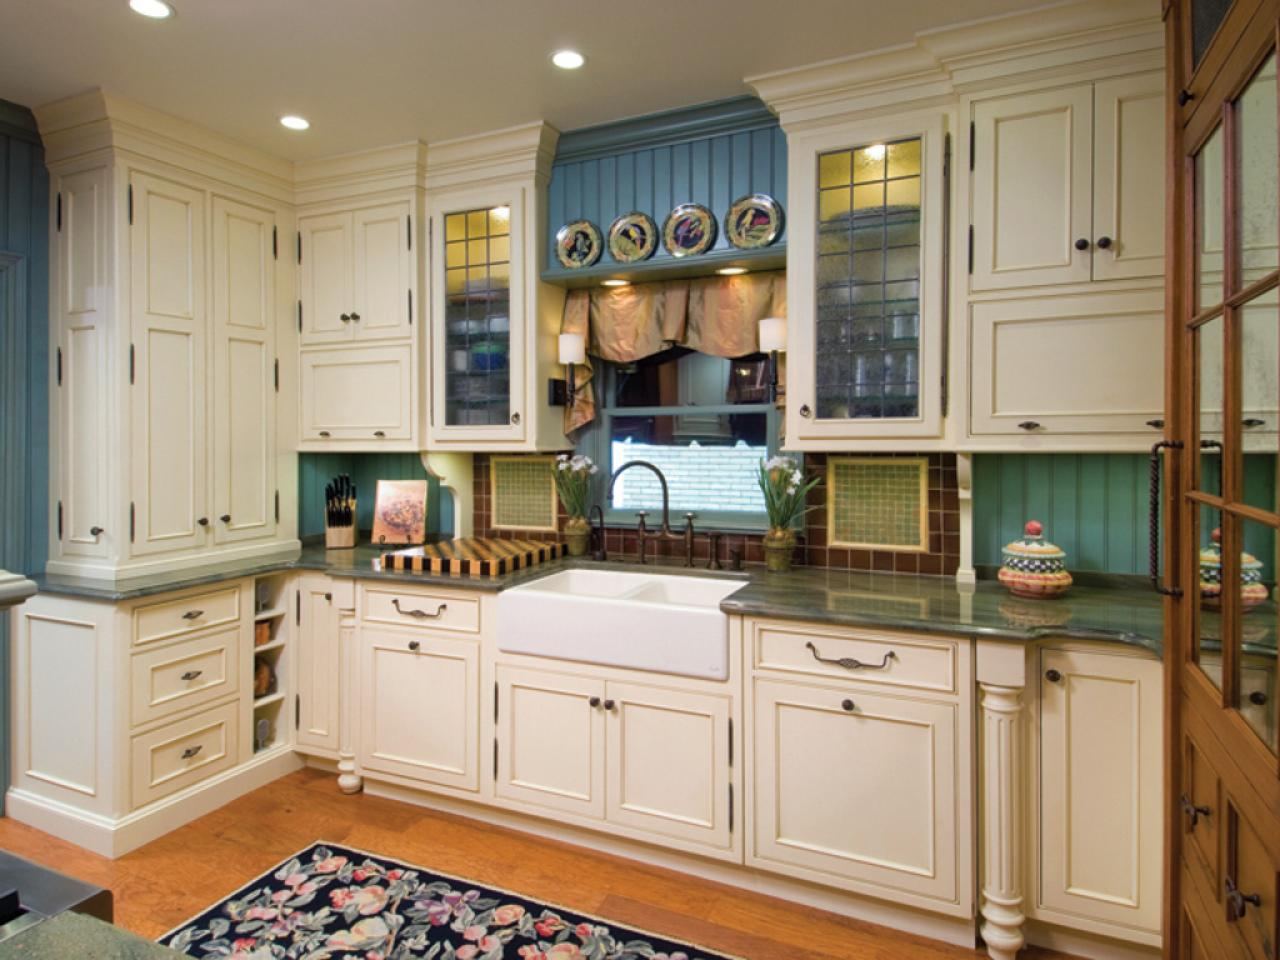 Painting kitchen backsplashes pictures ideas from hgtv hgtv Kitchen backsplash ideas singapore